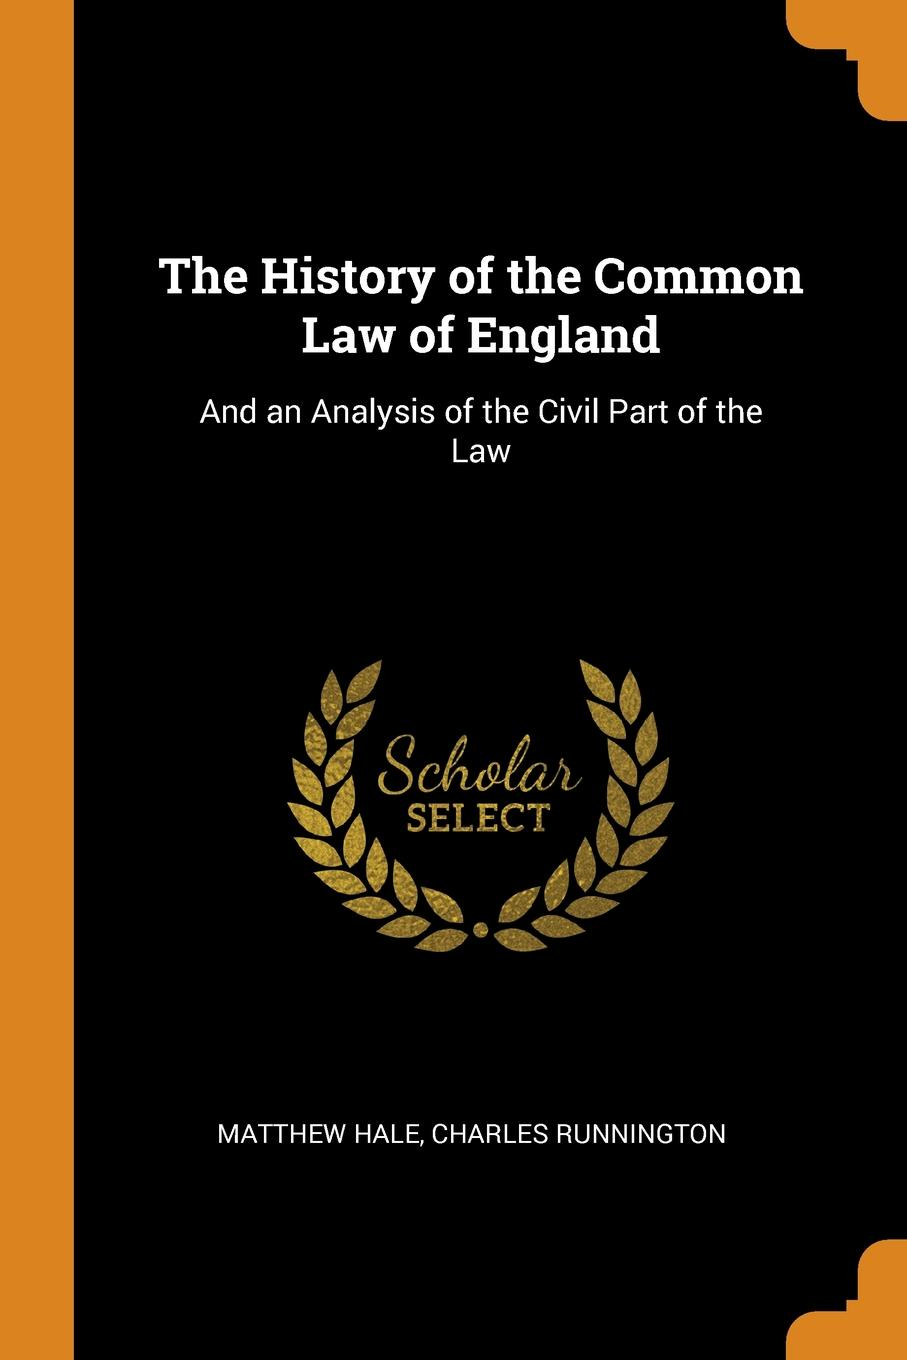 The History of the Common Law of England. And an Analysis of the Civil Part of the Law. Matthew Hale, Charles Runnington